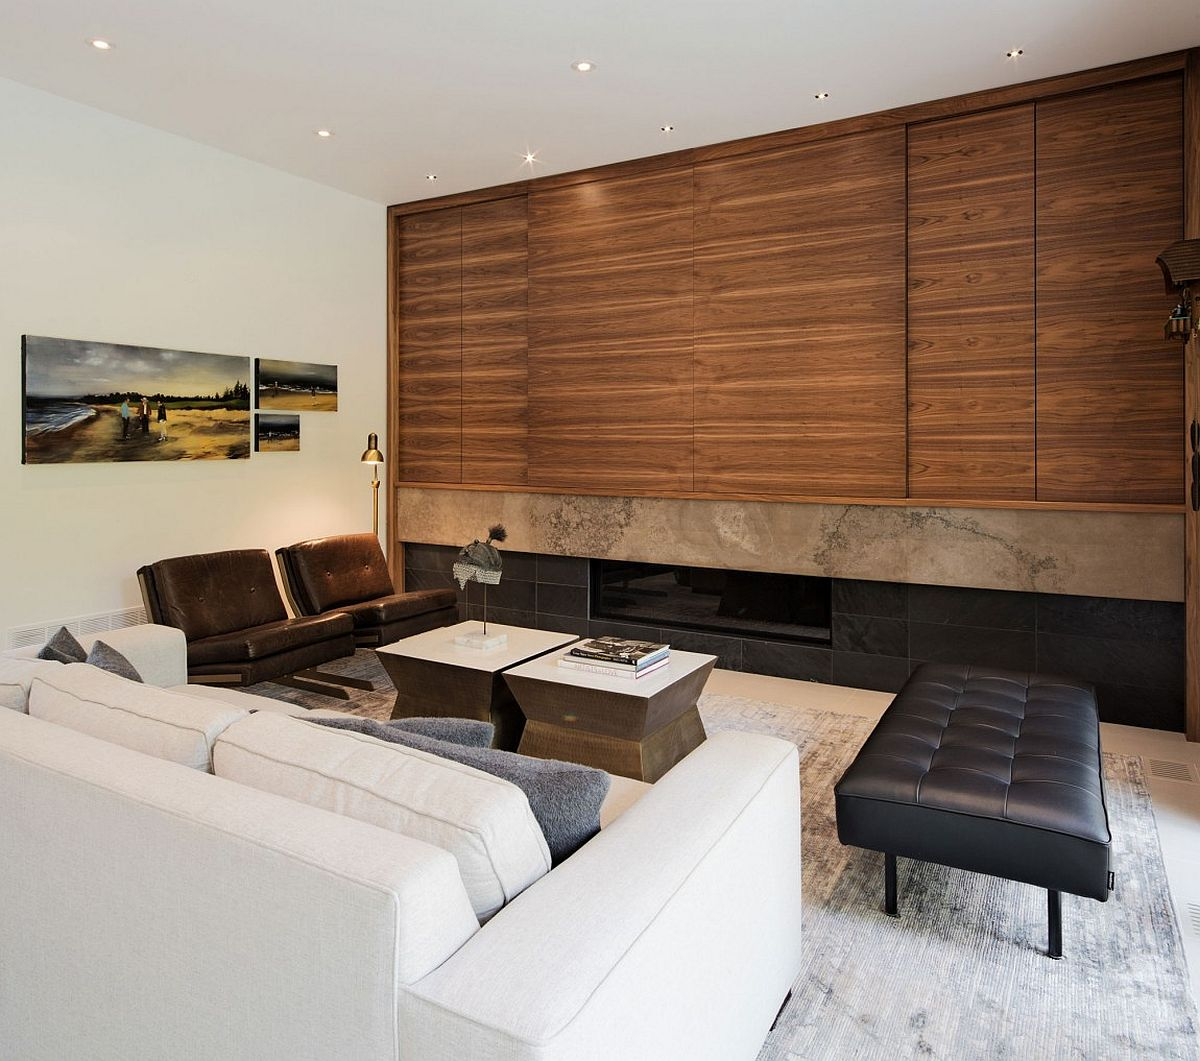 Contemporary living space with comfy decor and wooden shelves